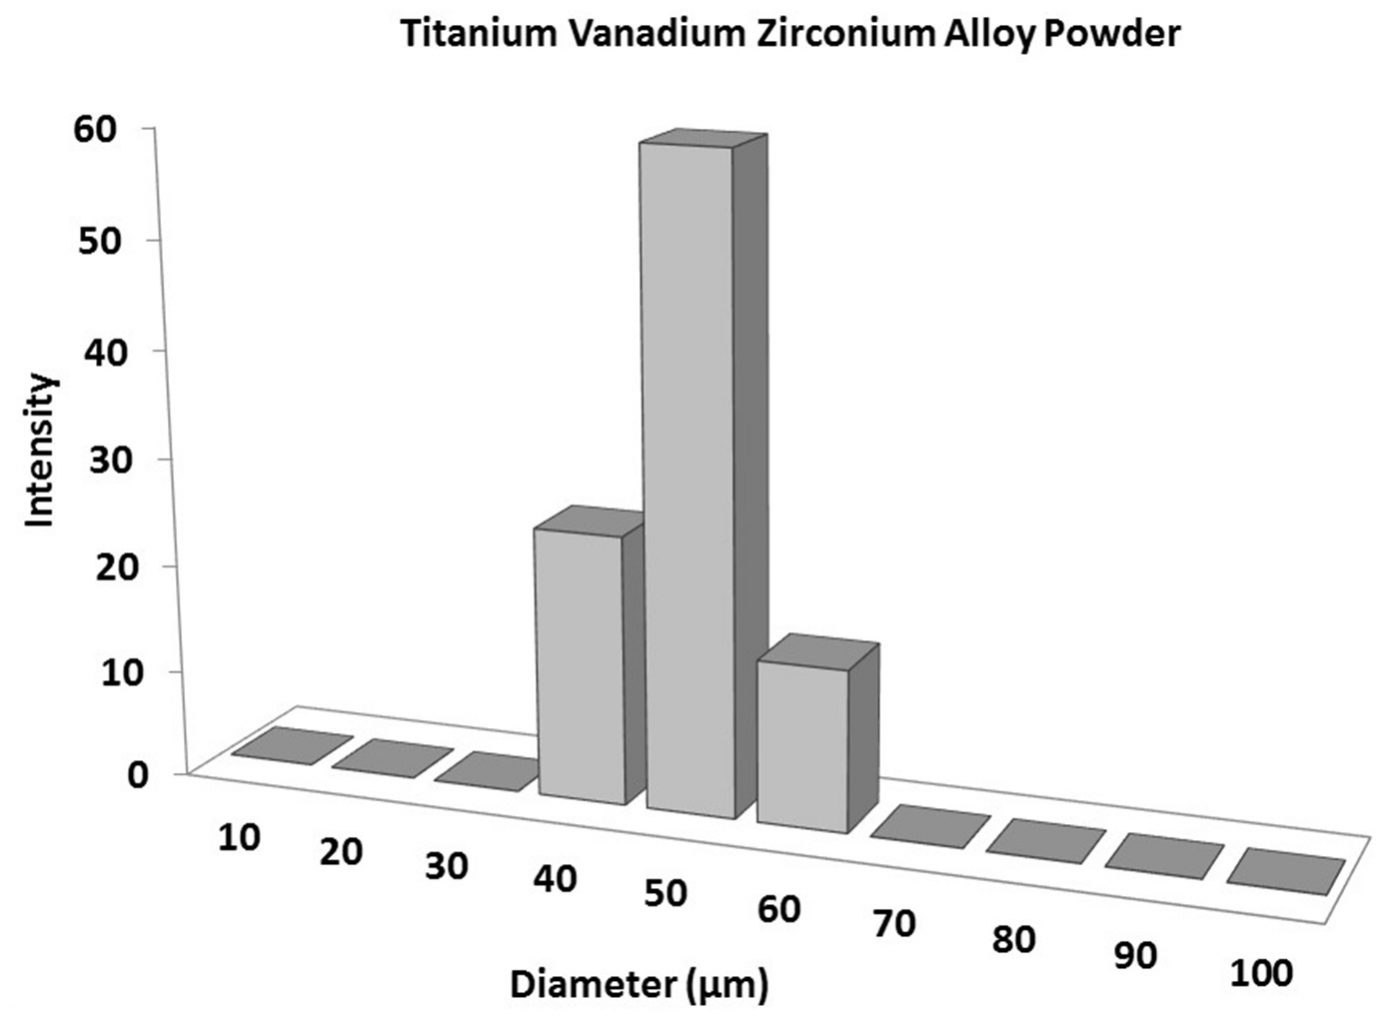 Particles Size Analysis – TiVZr Powder